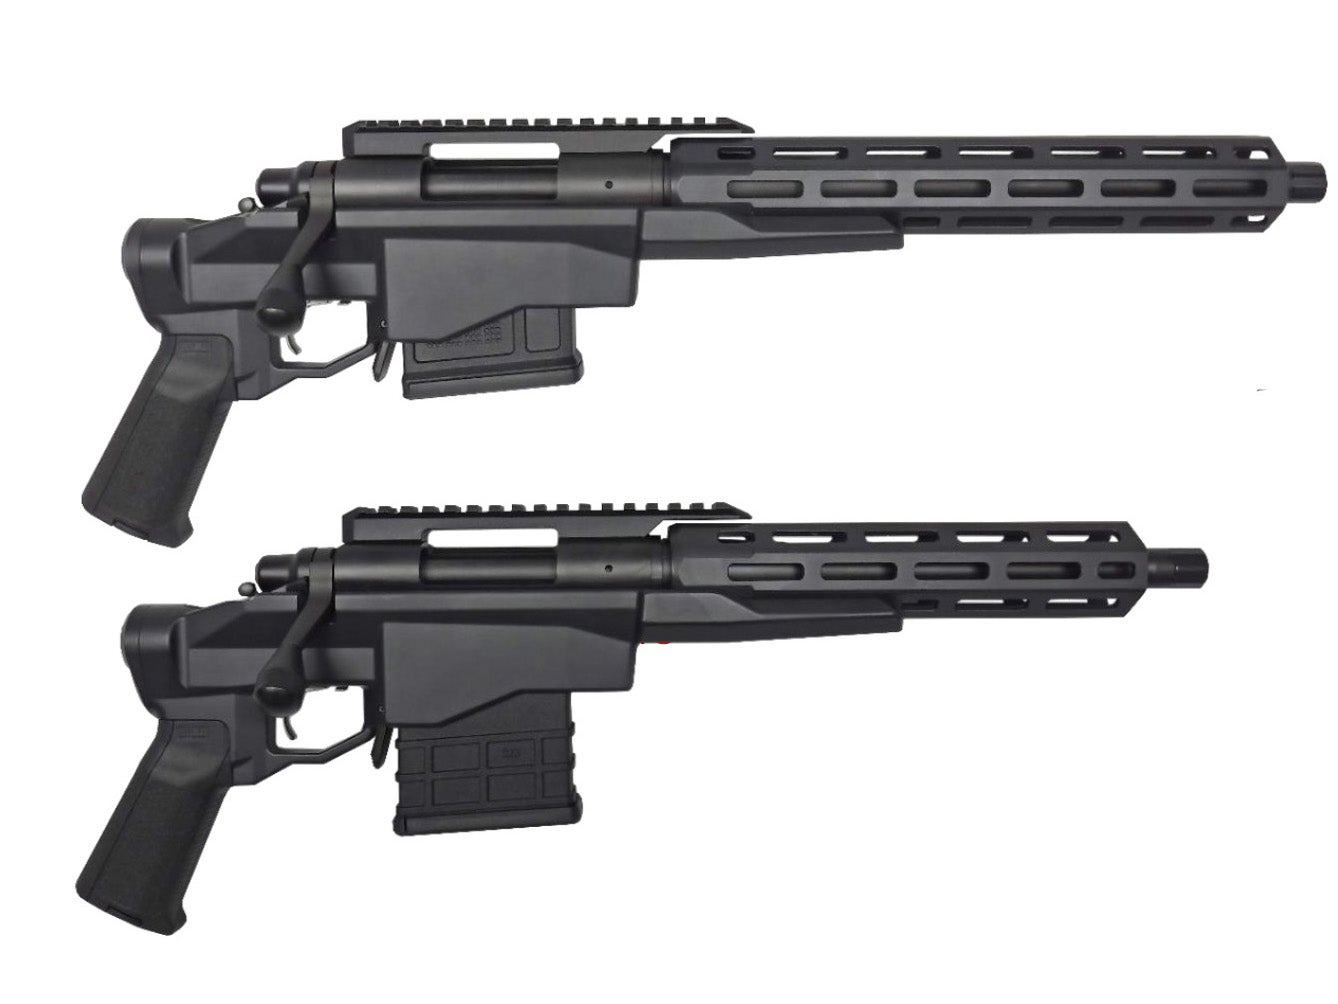 Remington Introduces the Model 700 Chassis Pistol